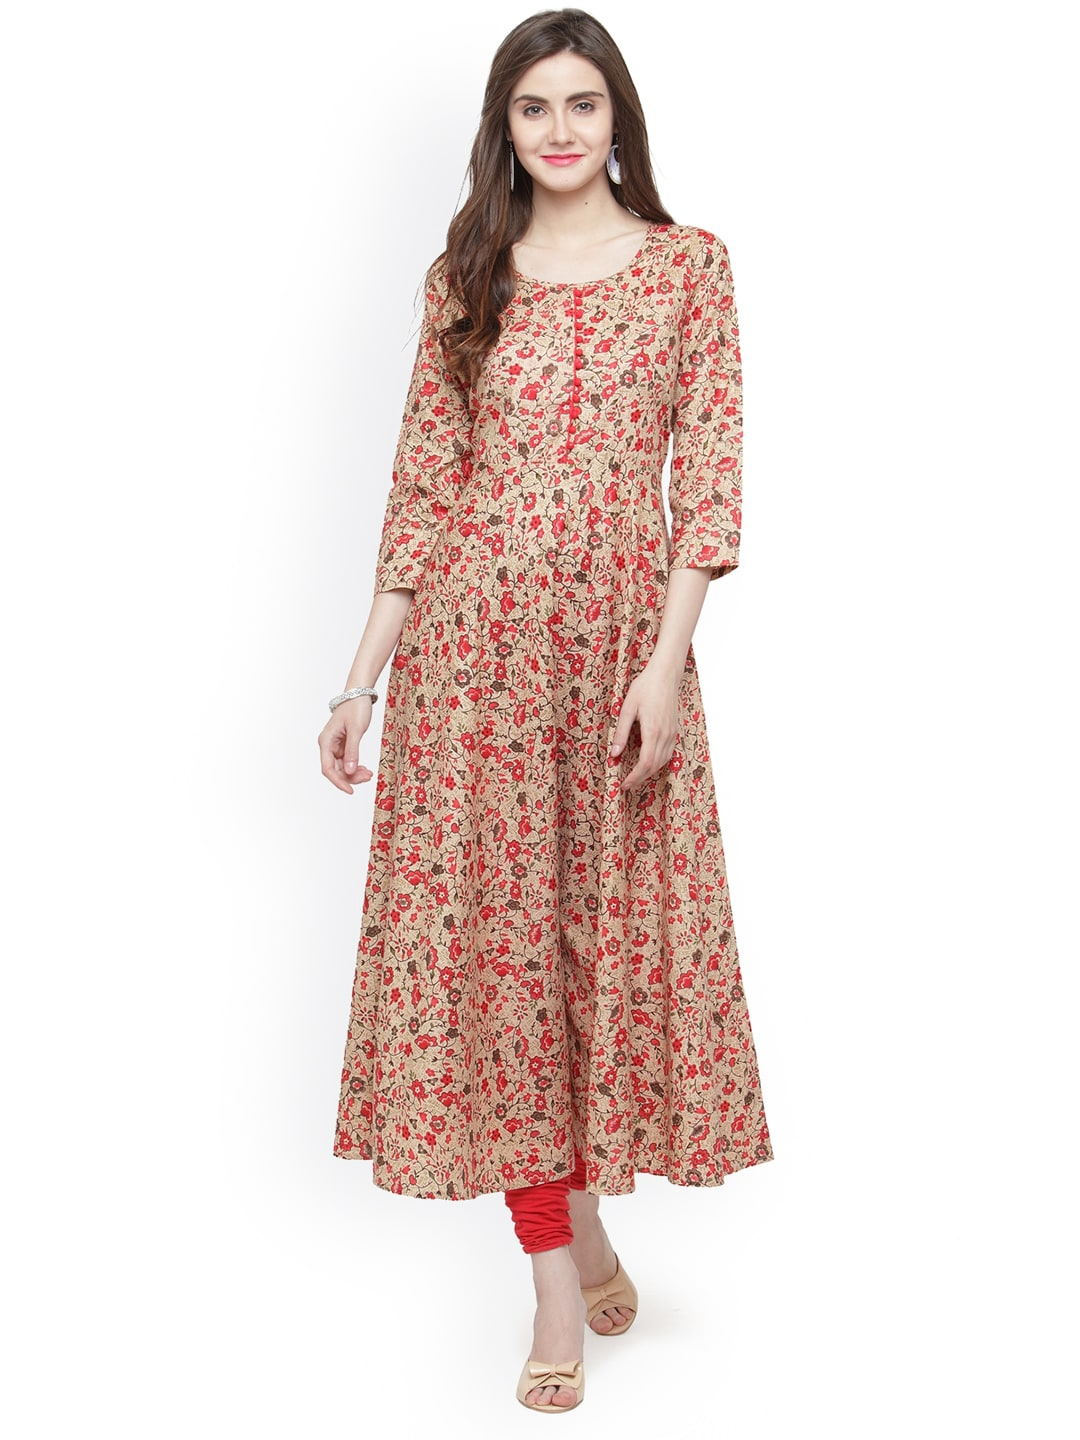 6f812c5366465e Kurtis Online - Buy Designer Kurtis   Suits for Women - Myntra